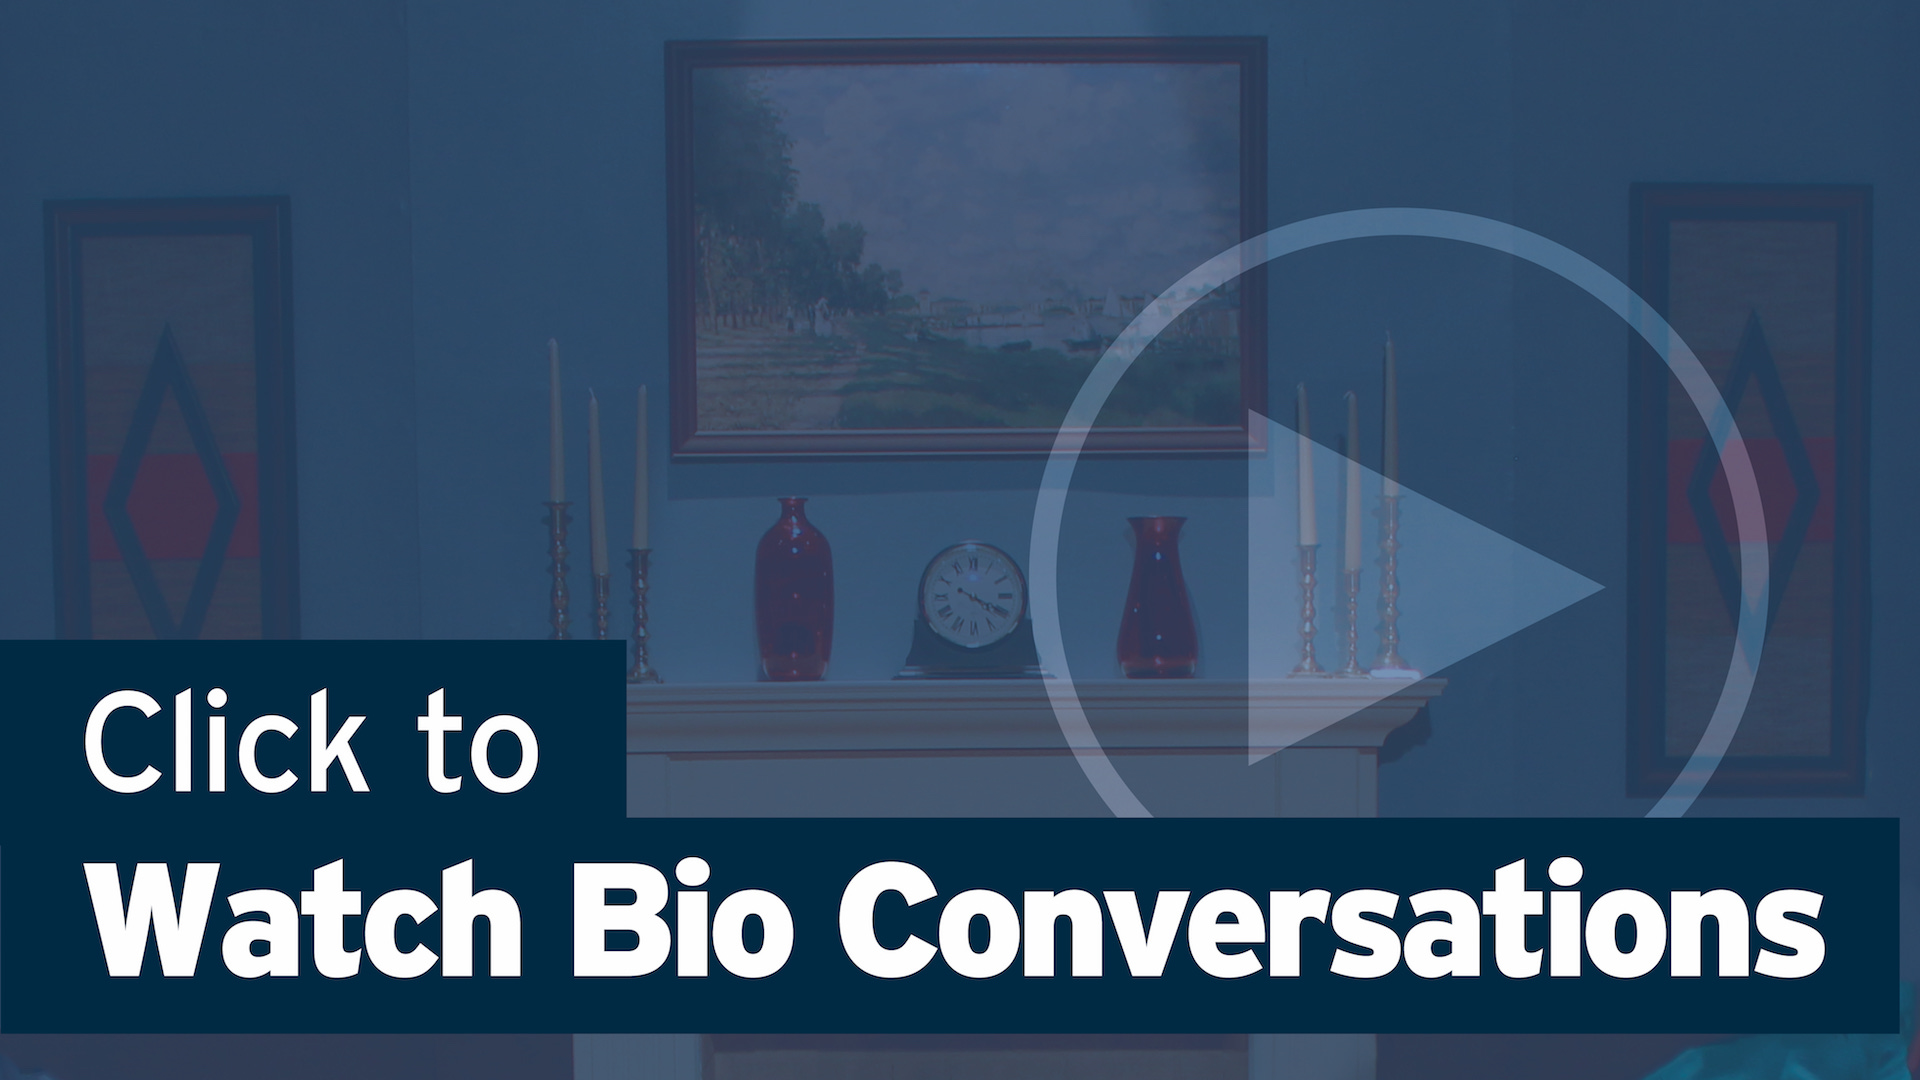 Click Here to Watch Bio Conversations